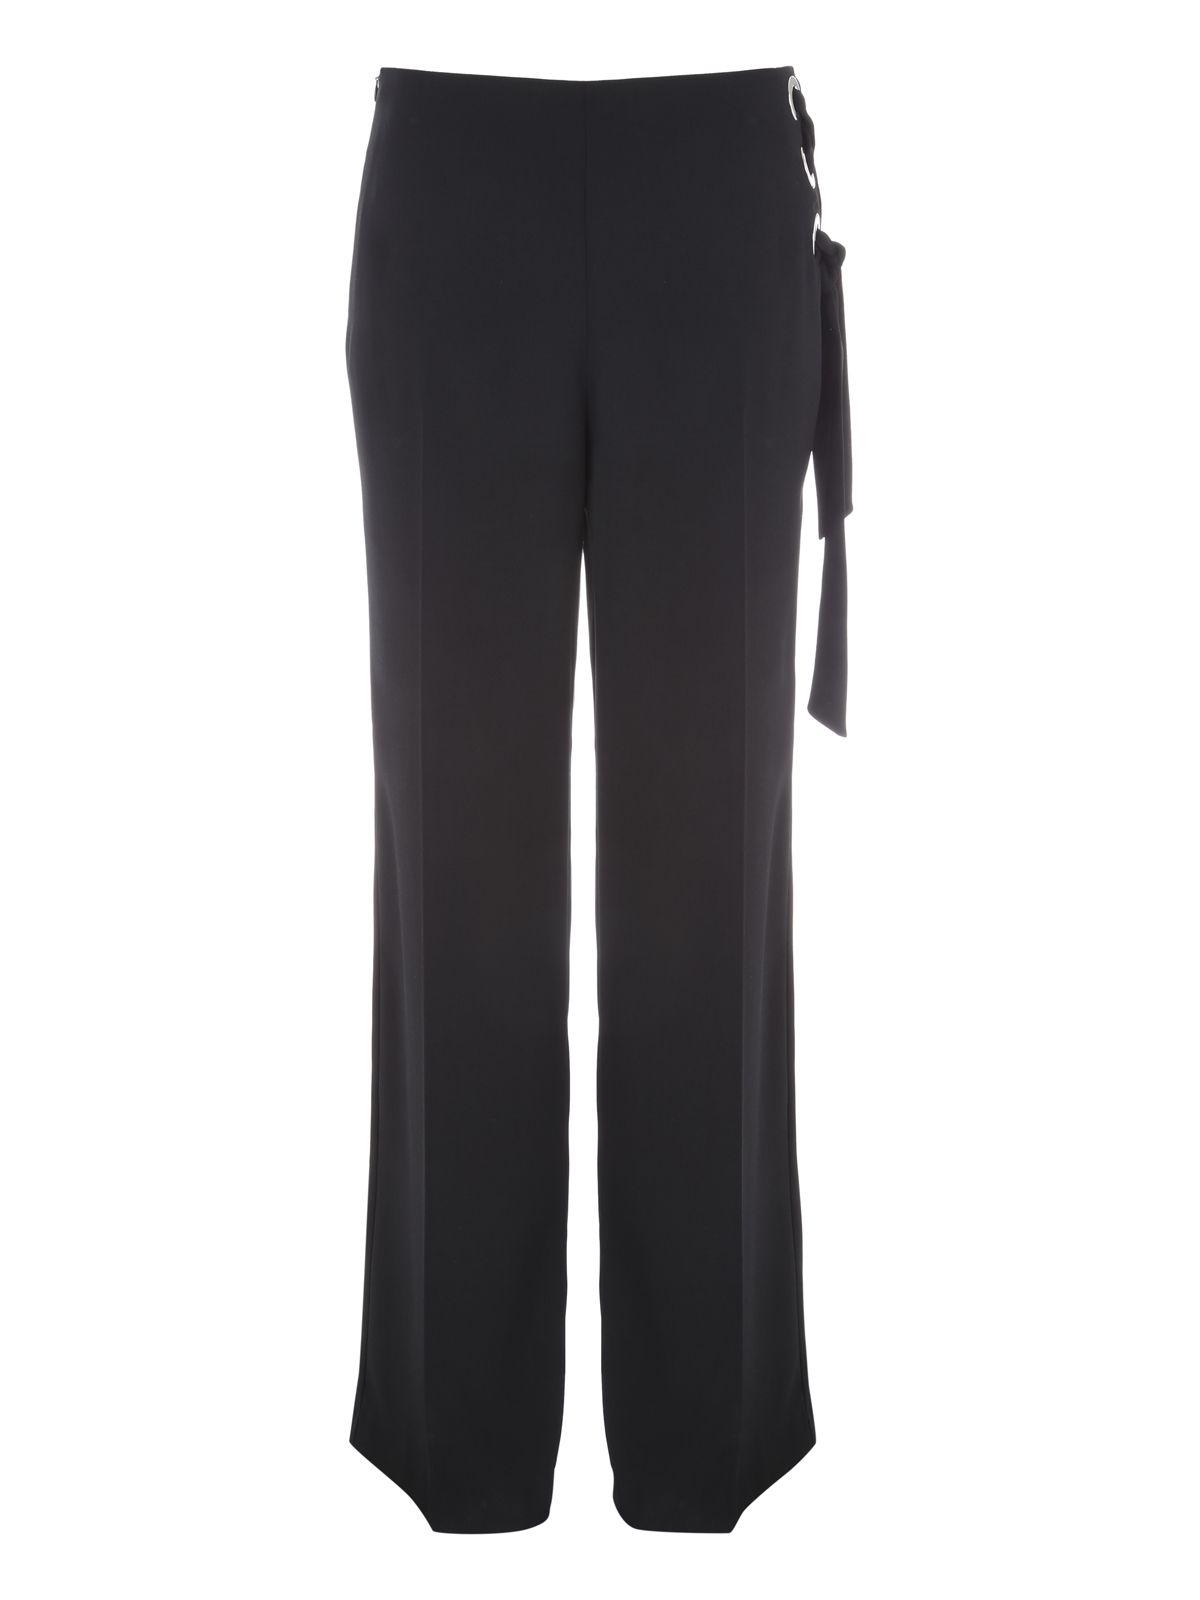 Jane Norman Wide Leg Eyelet Trousers, Black